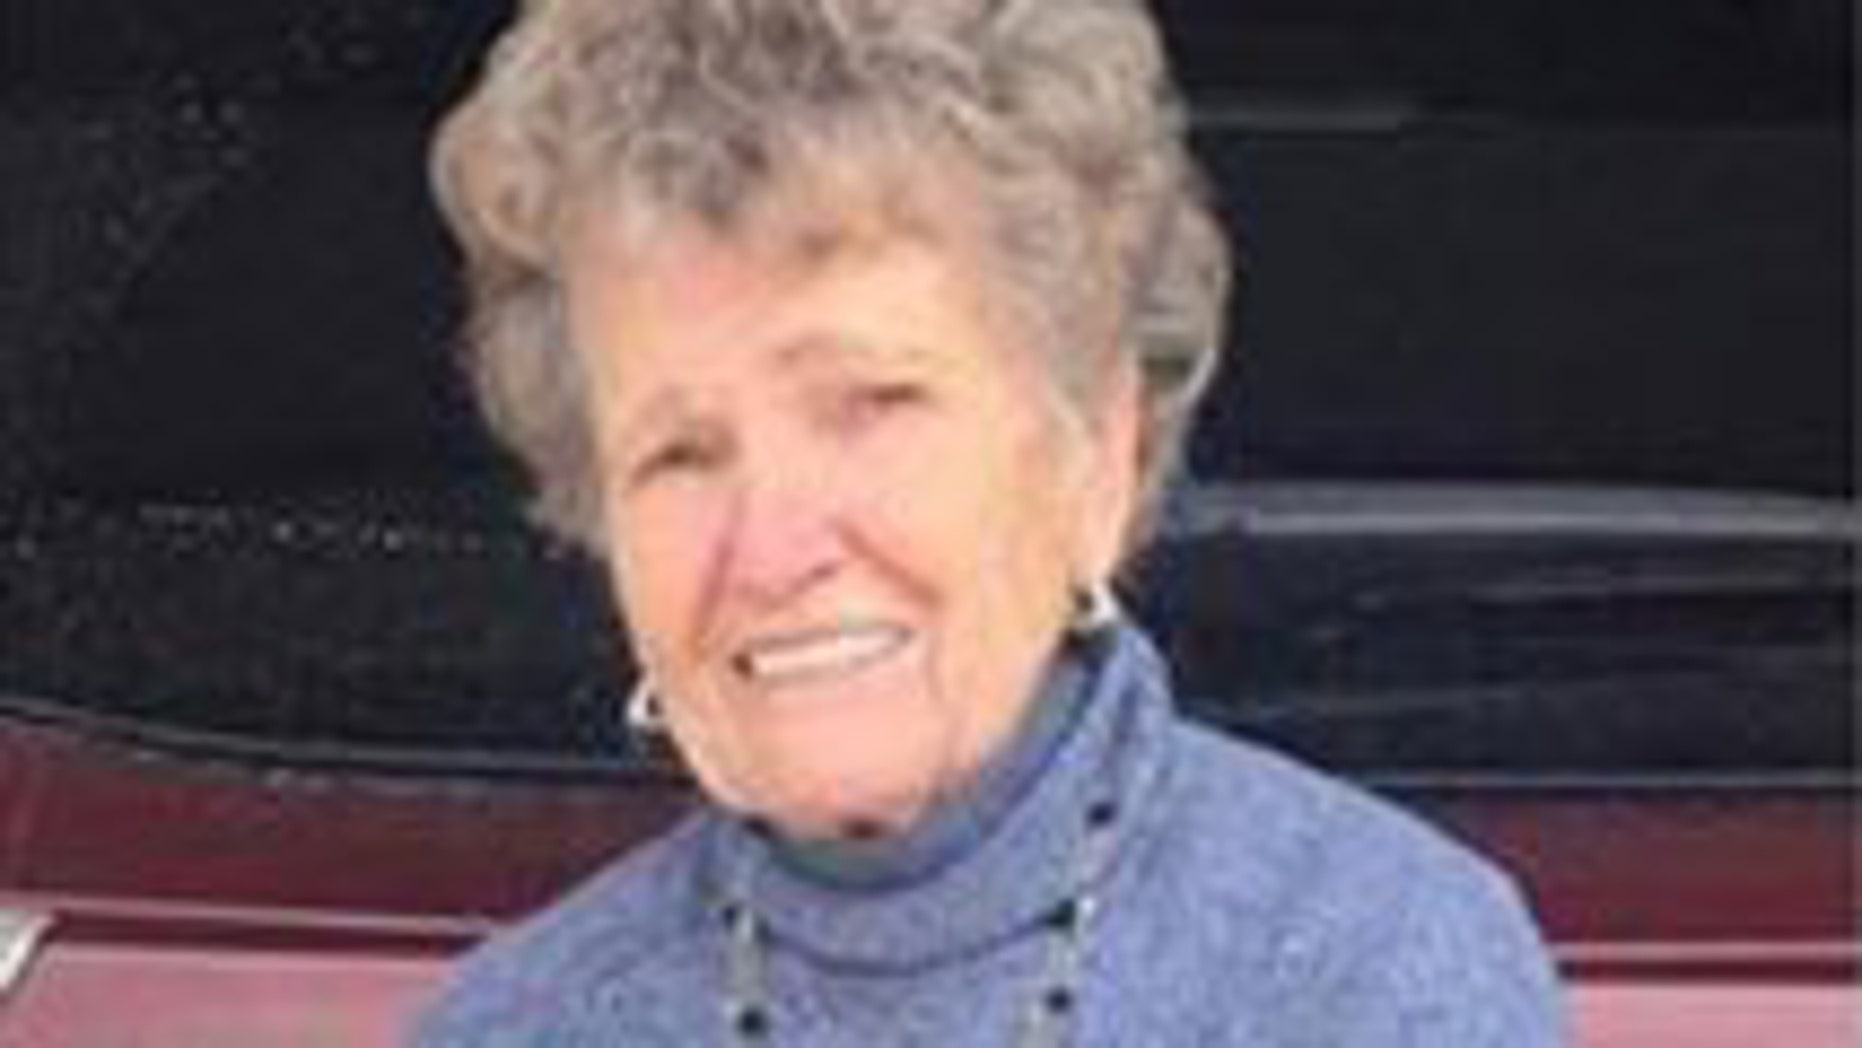 Ruby Stein was stranded for five days in the Colorado mountains.